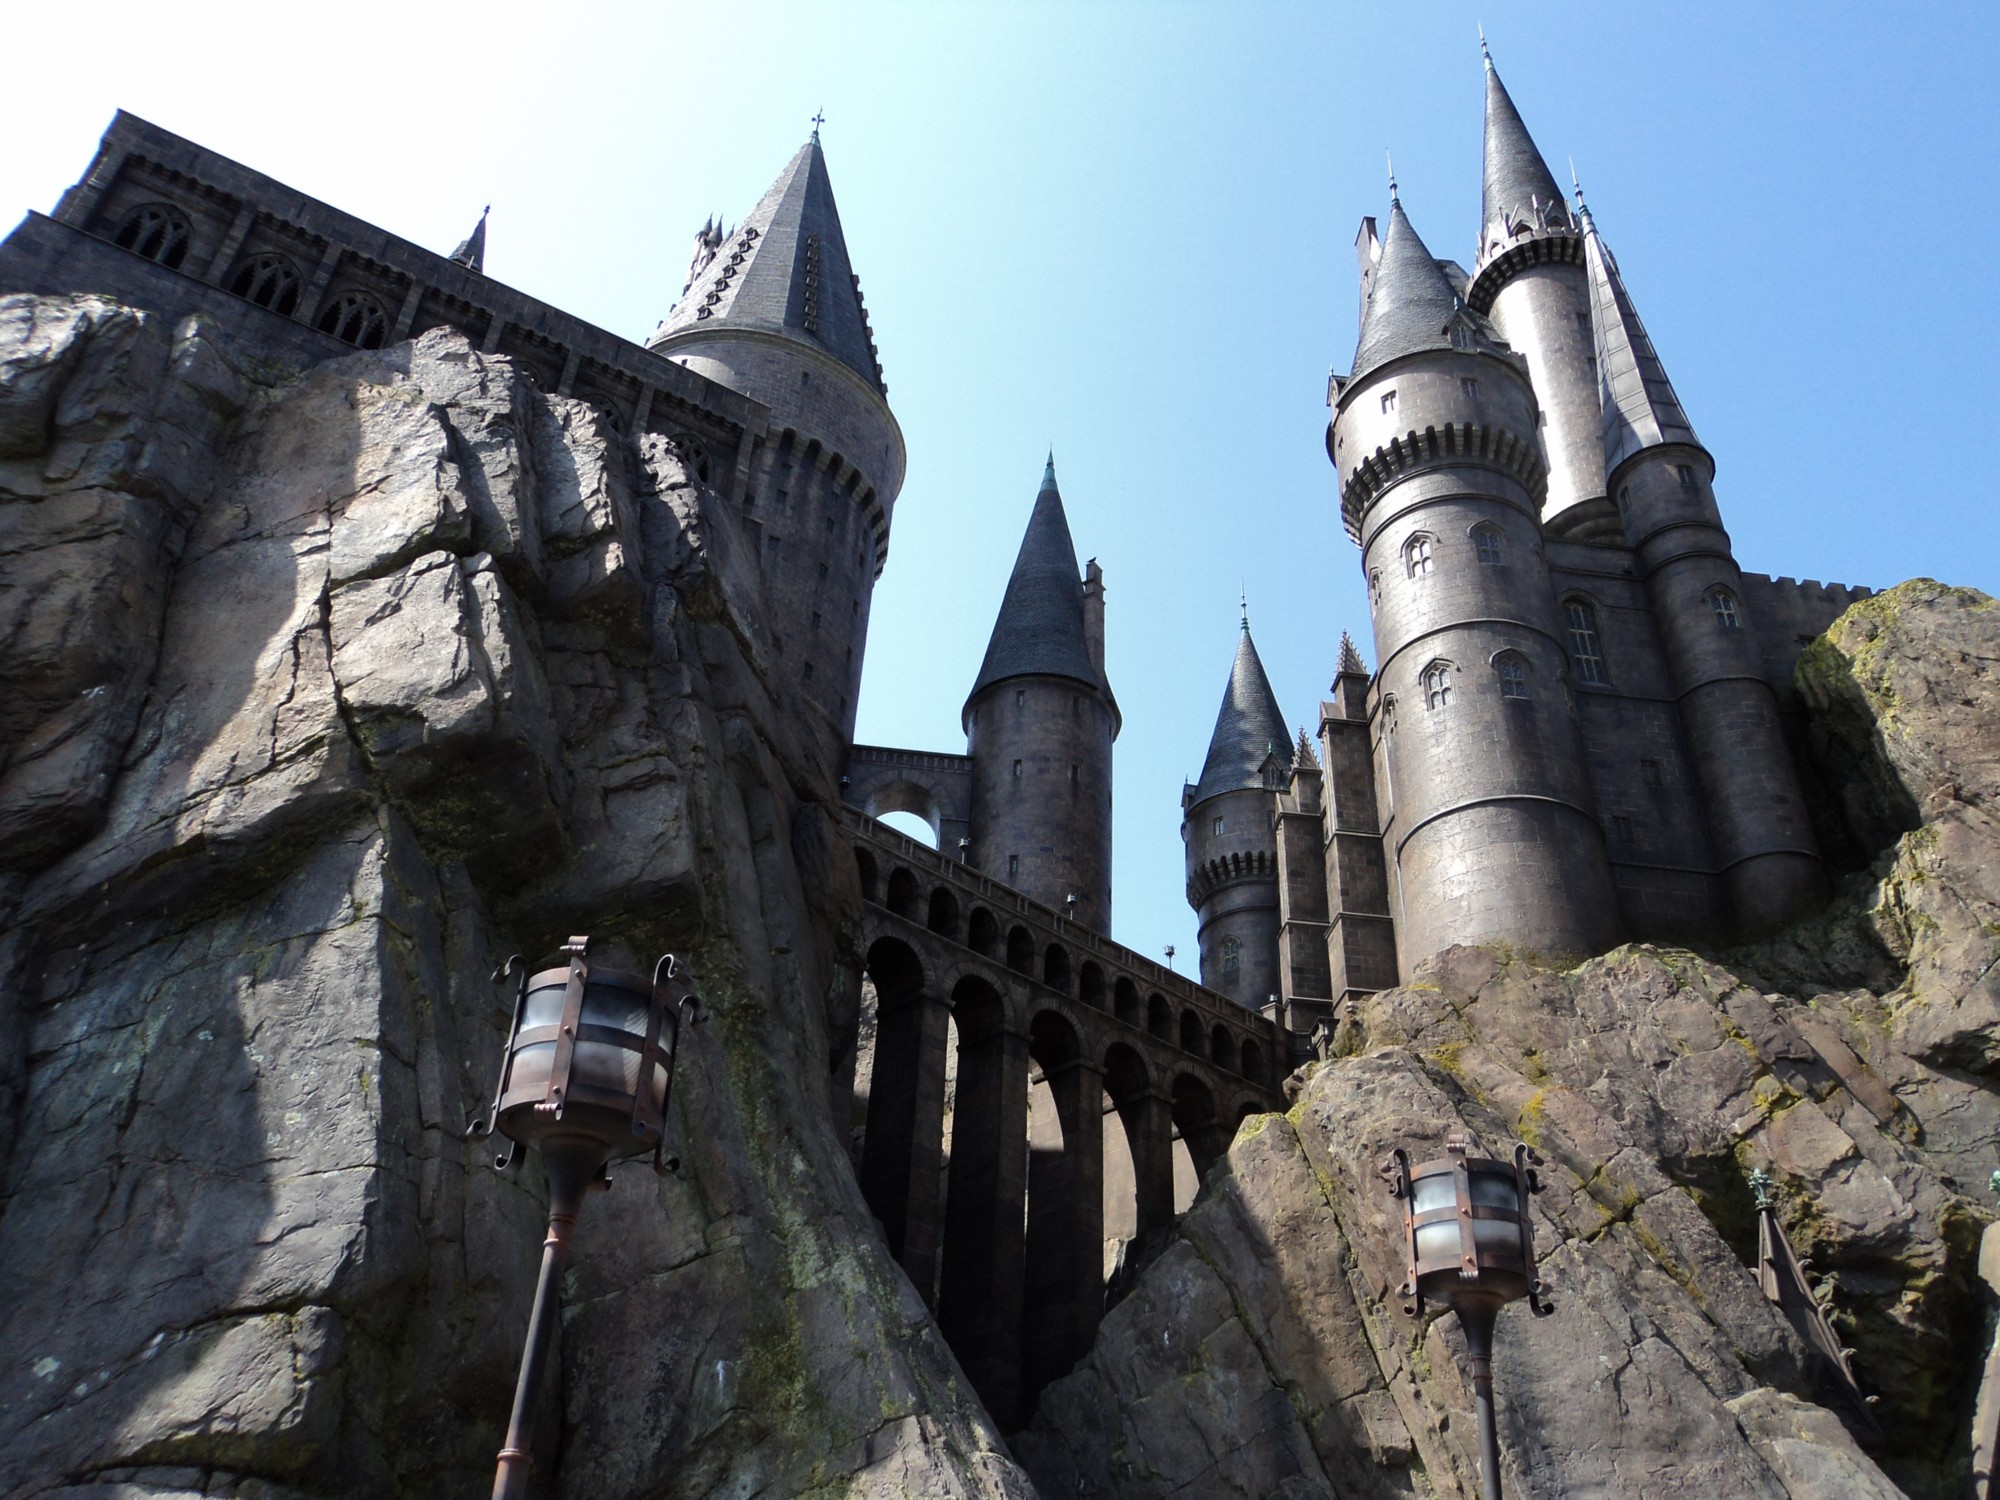 The Wizarding World of Harry Potter photo